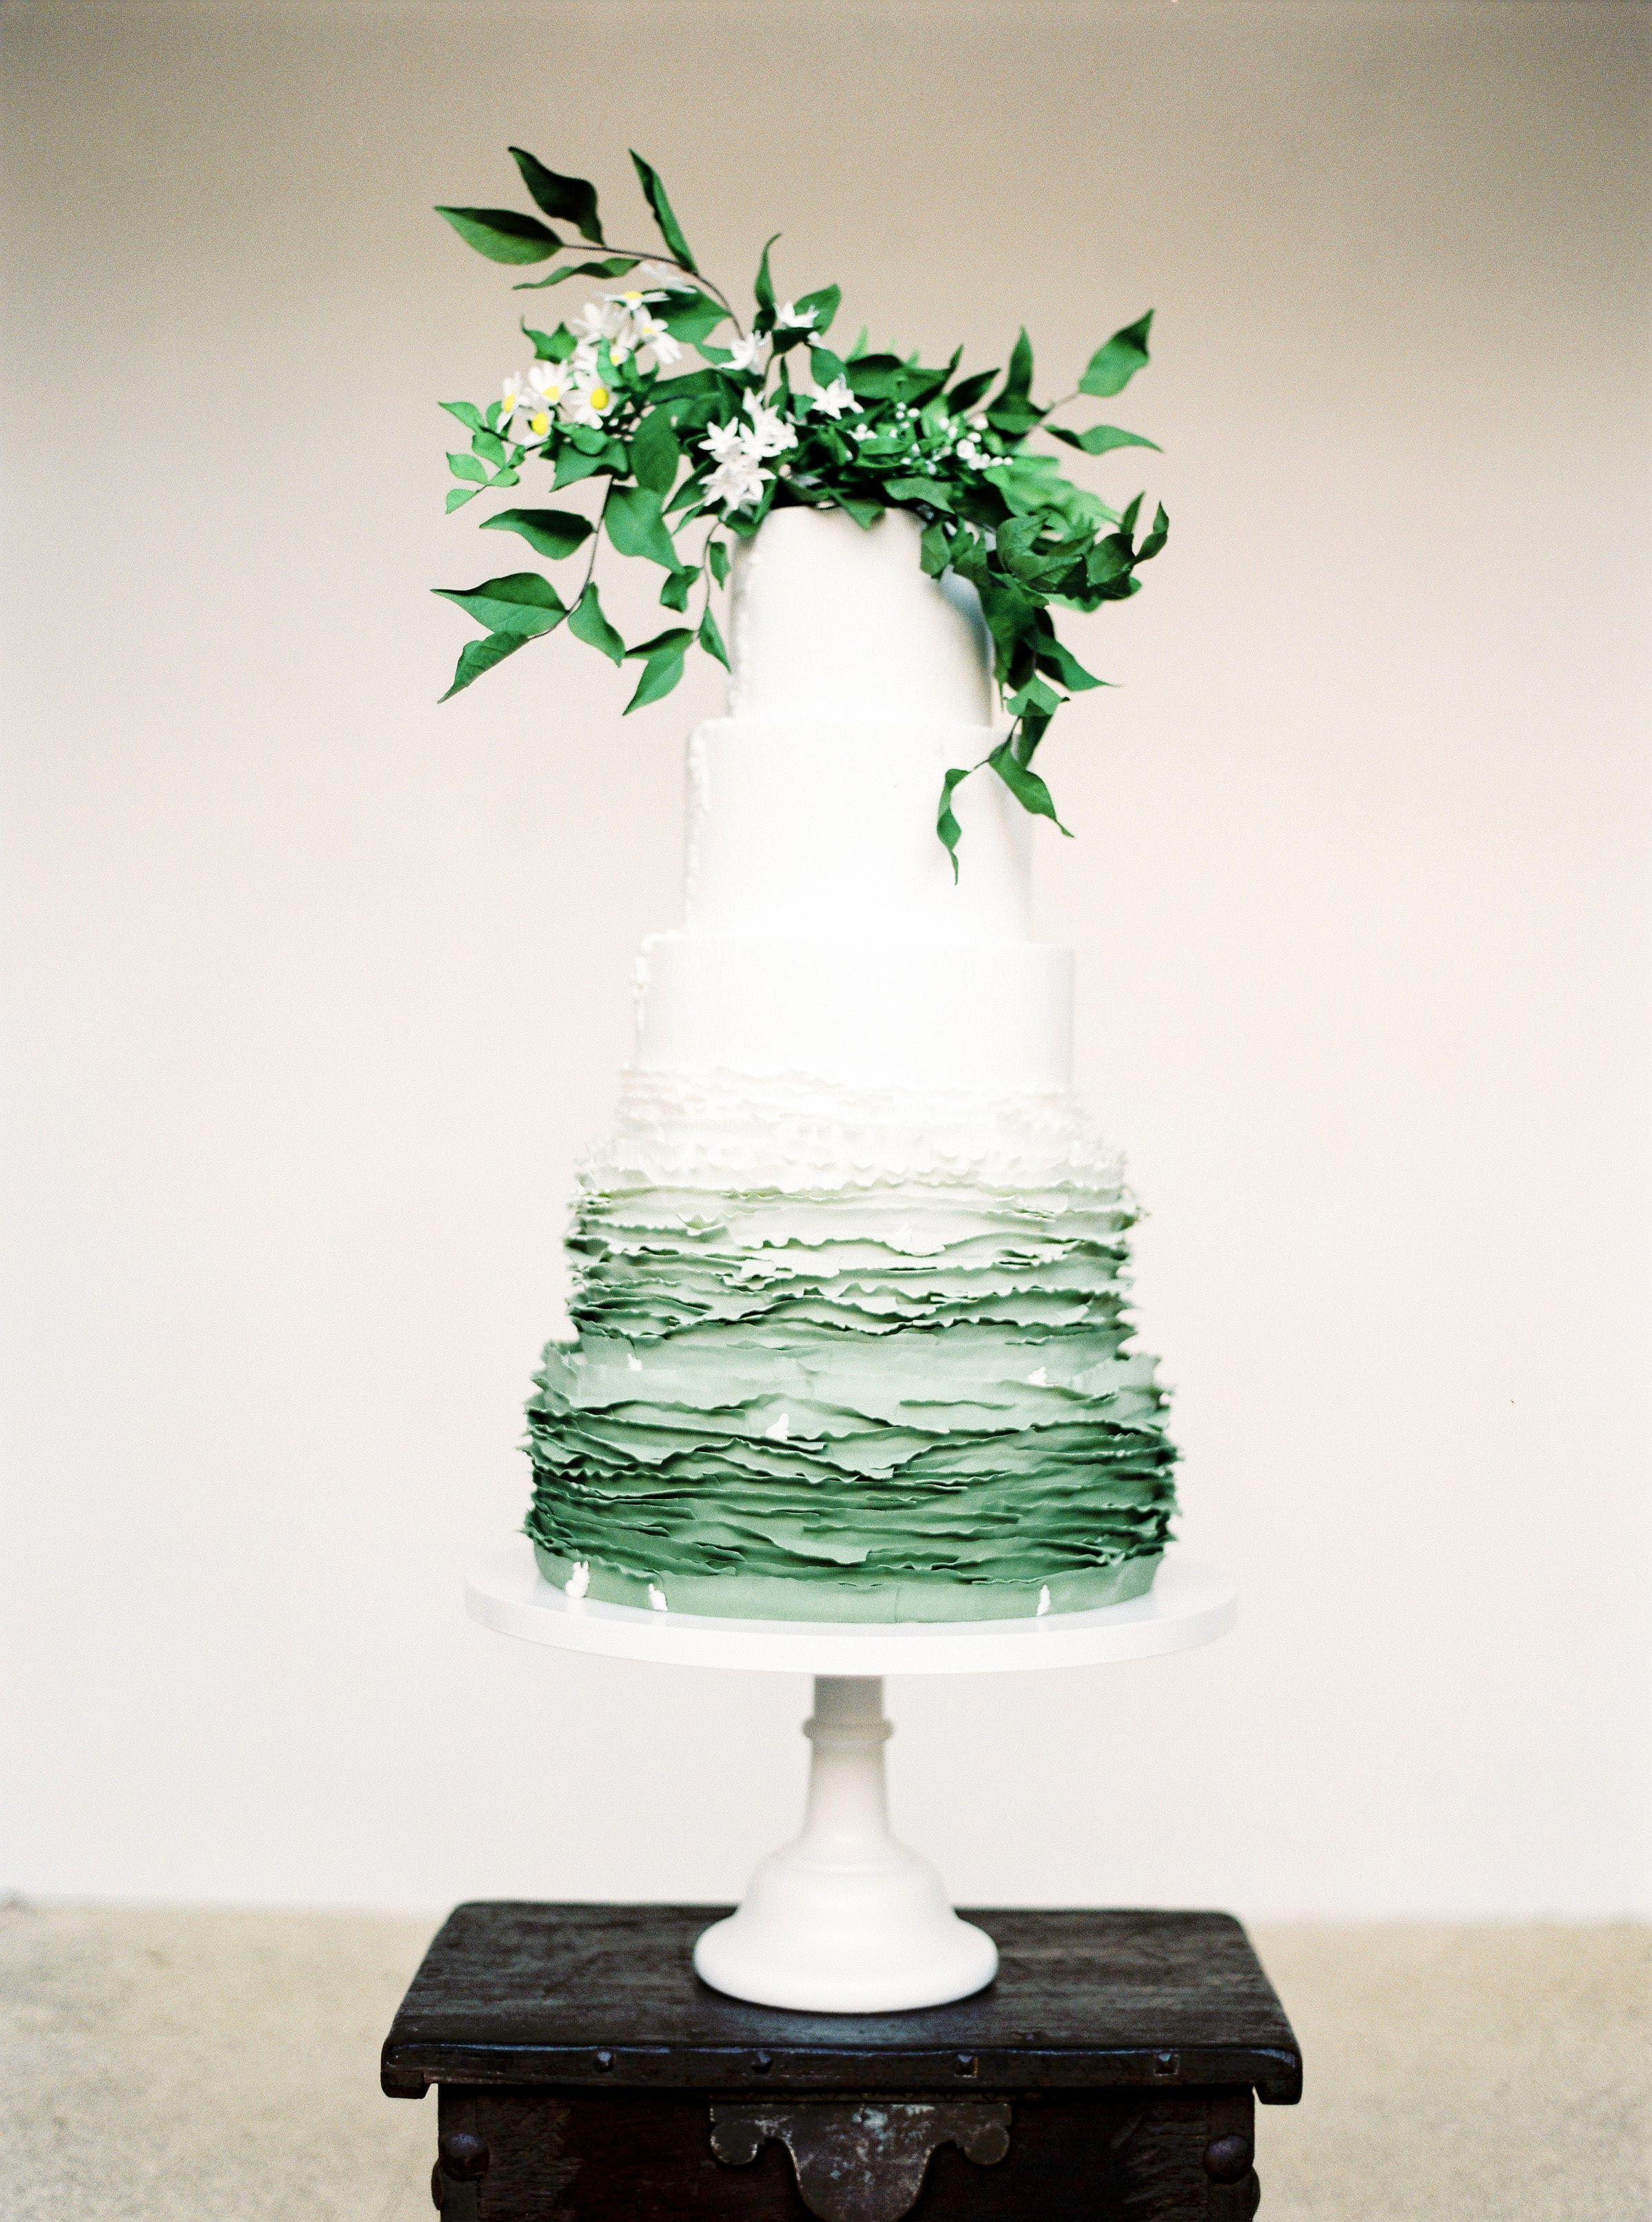 Summer Wedding Cakes That Speak to the Season